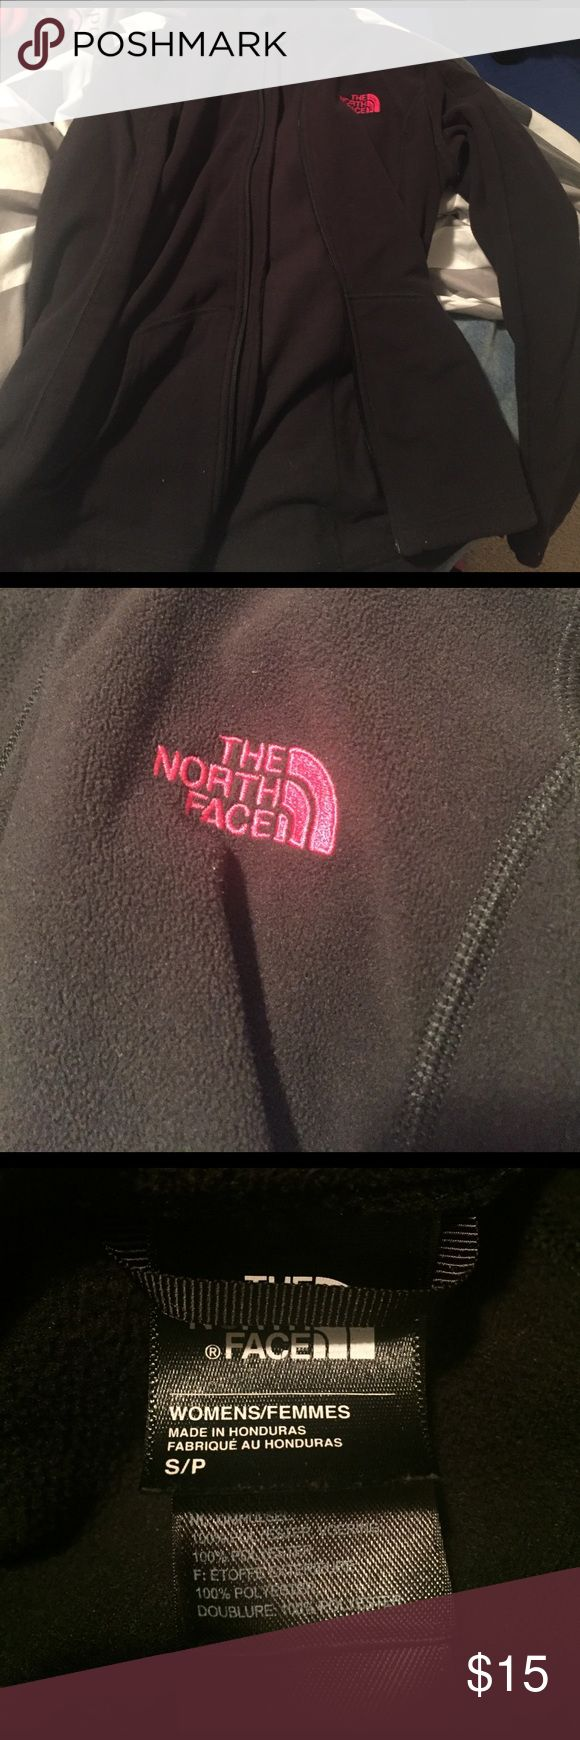 Small women's north face jacket Black with pink north face sign The North Face Jackets & Coats